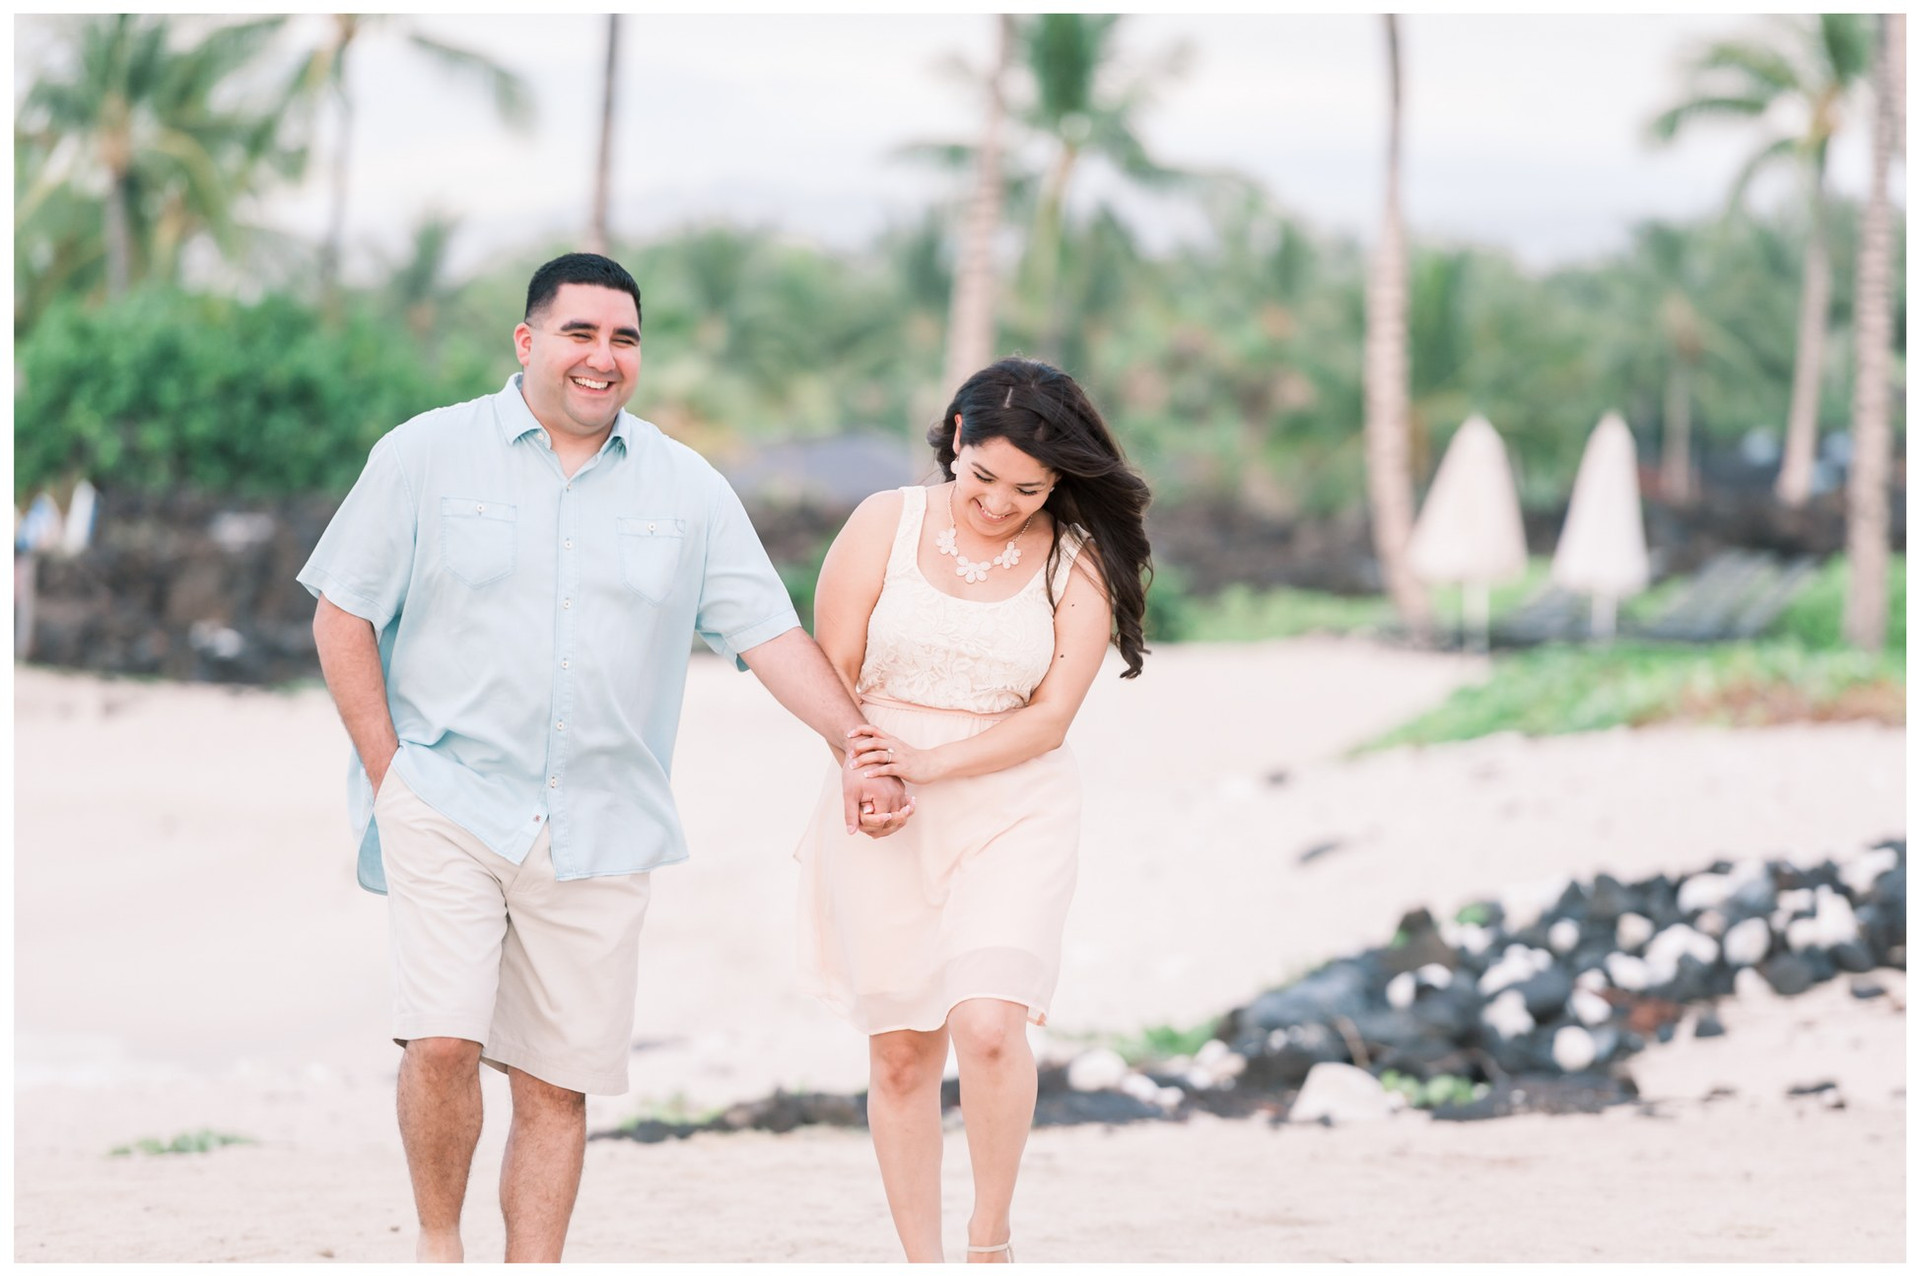 Hawaii Engagement Photographers 5.jpg